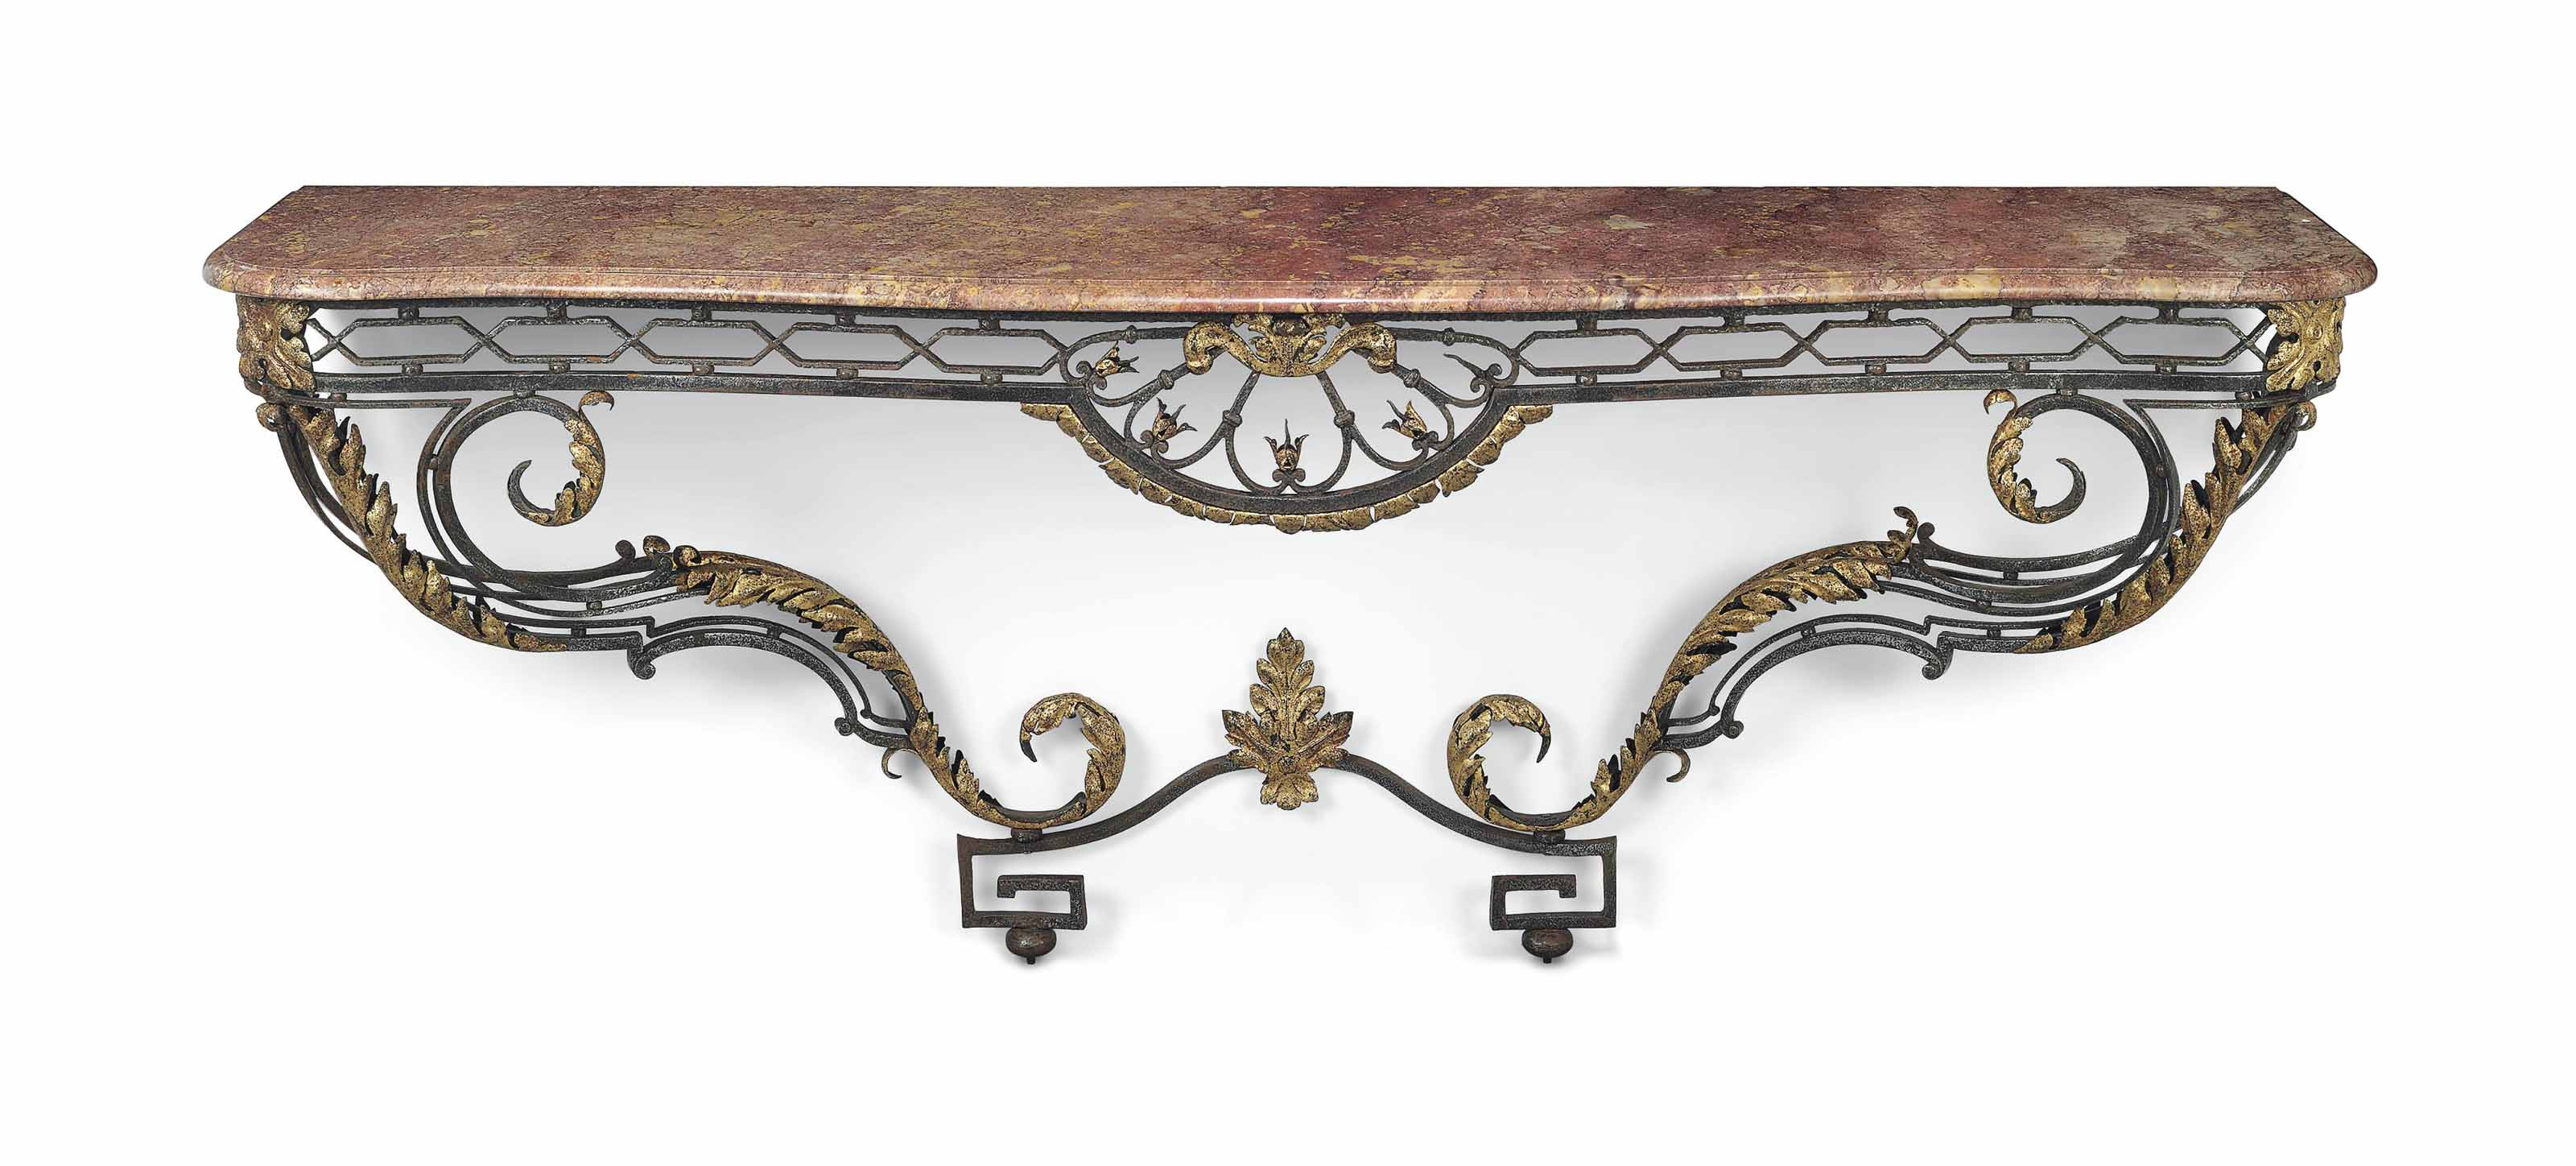 A LARGE FRENCH WROUGHT IRON AN